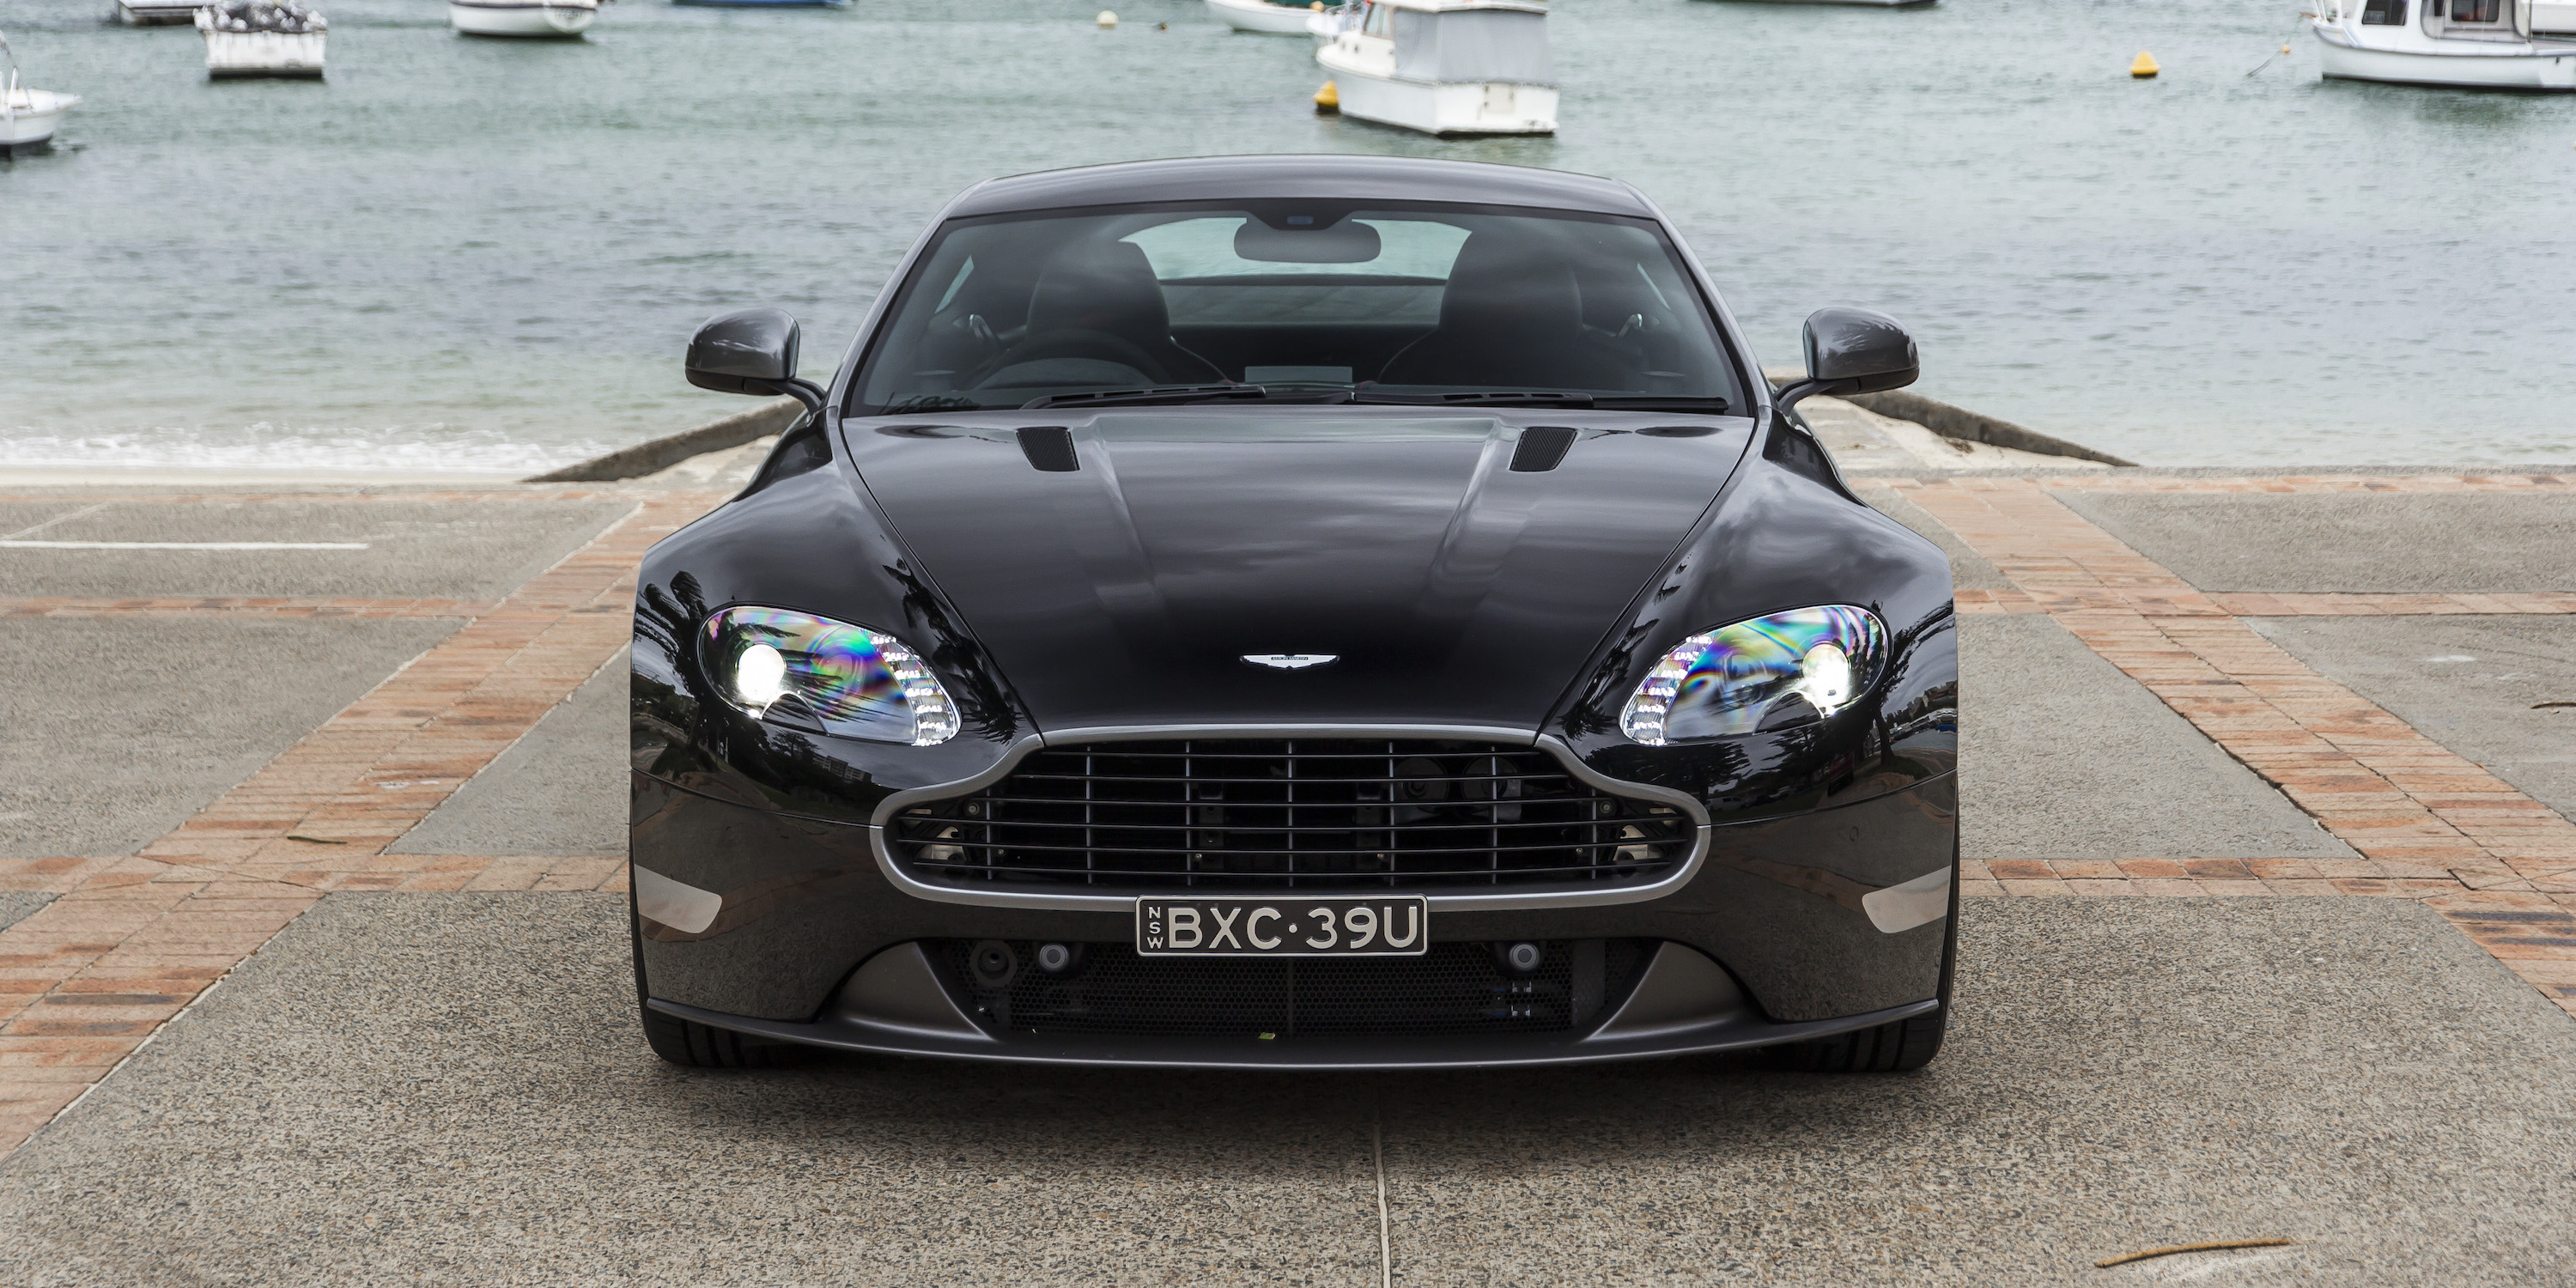 2016 Aston Martin Vantage Gt Front End (Photo 6 of 25)